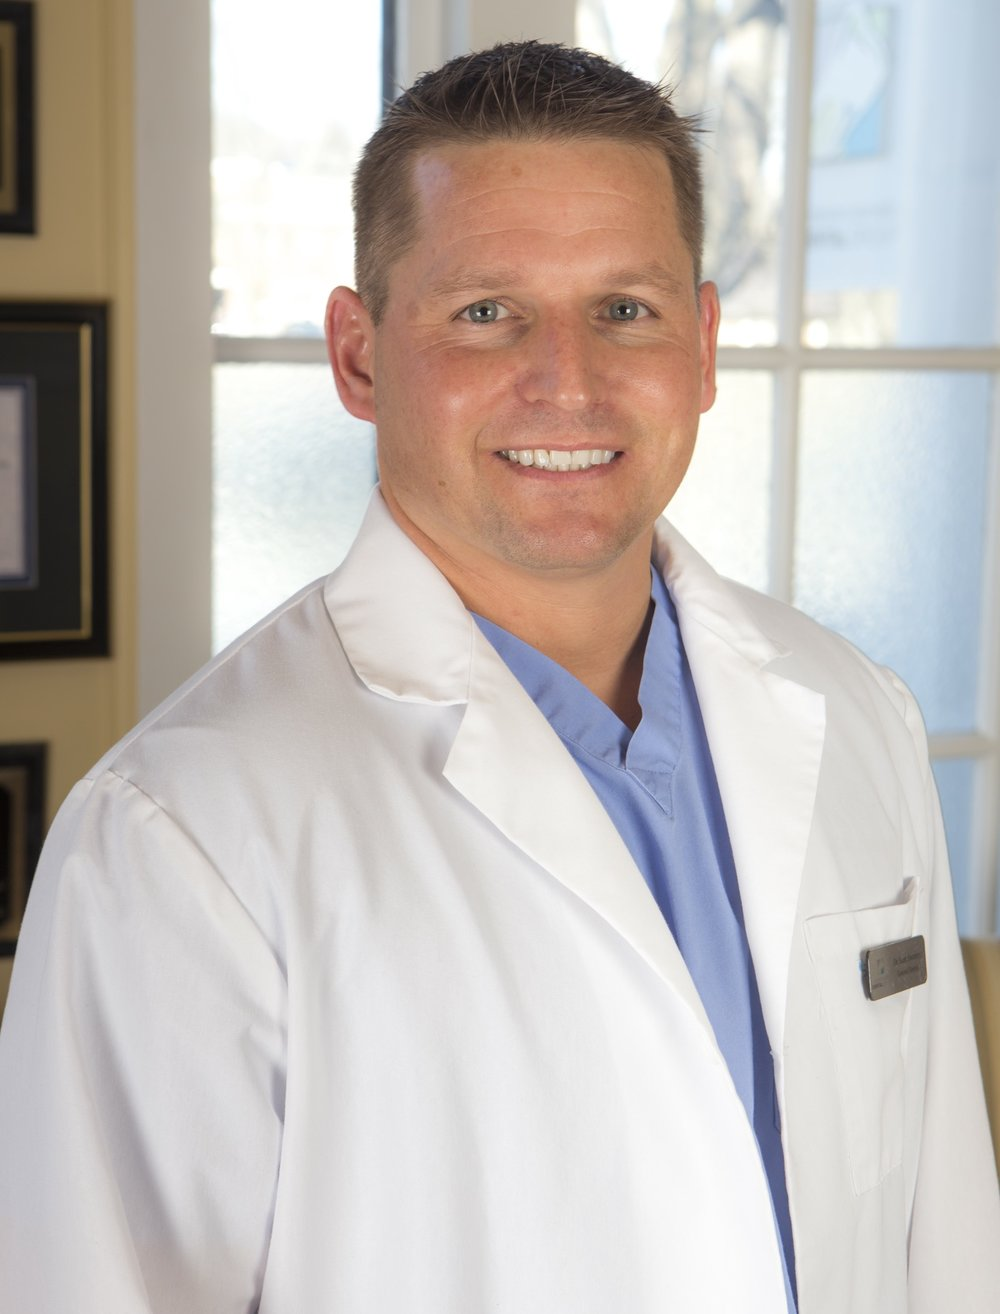 Dr._Scott_Sweeny_Andover_Dental.jpg